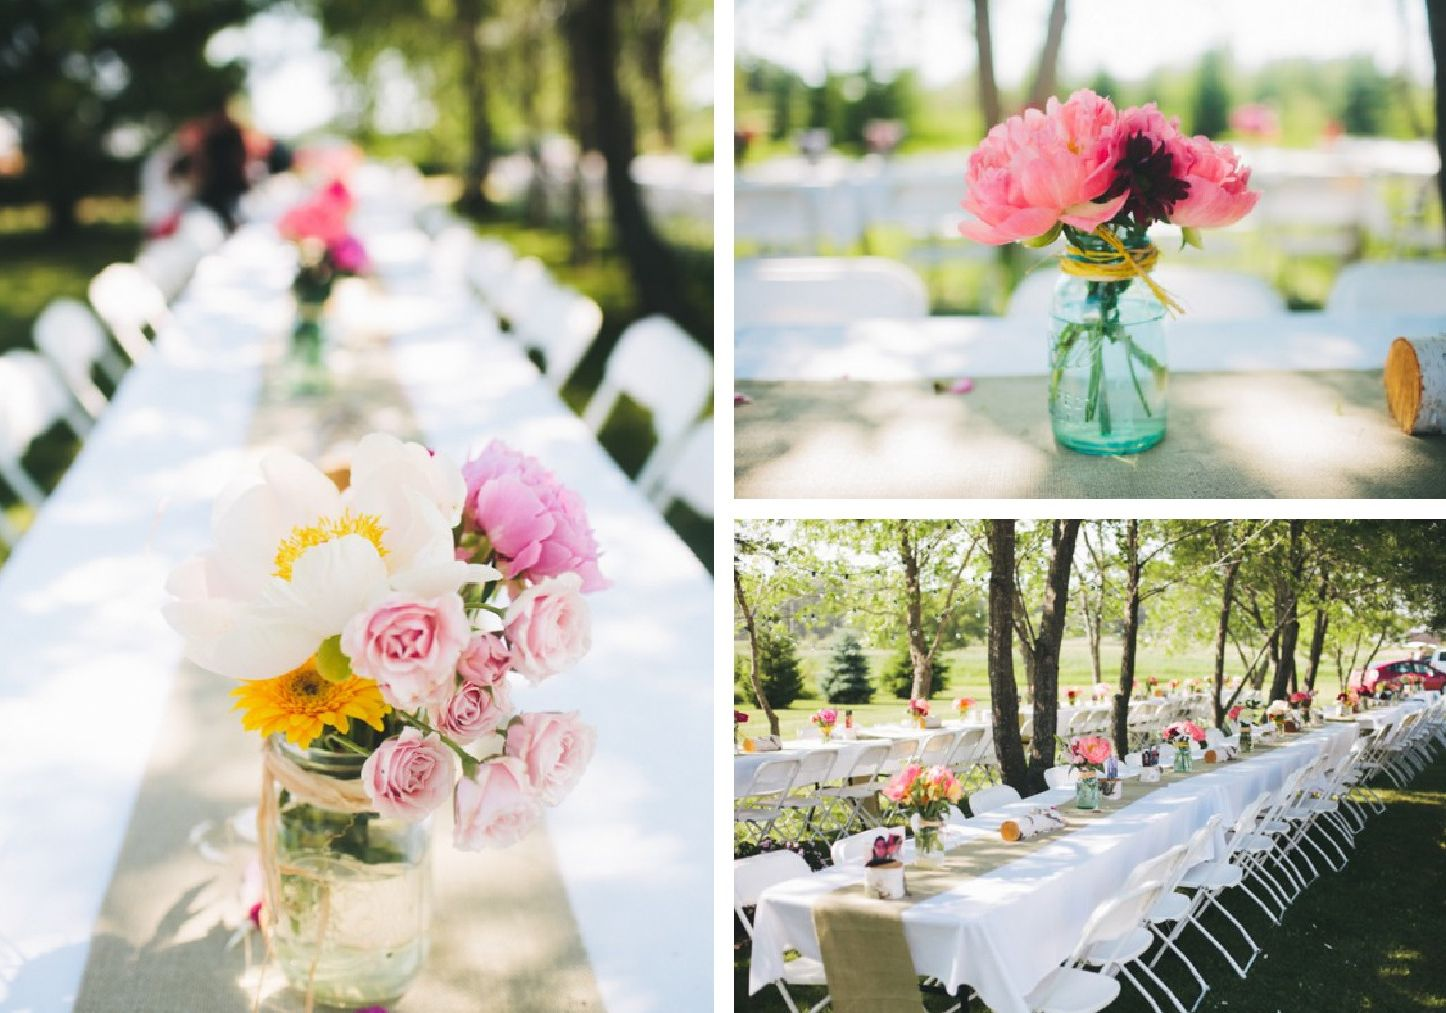 Decoration Outdoor Rustic Wedding Centerpiece